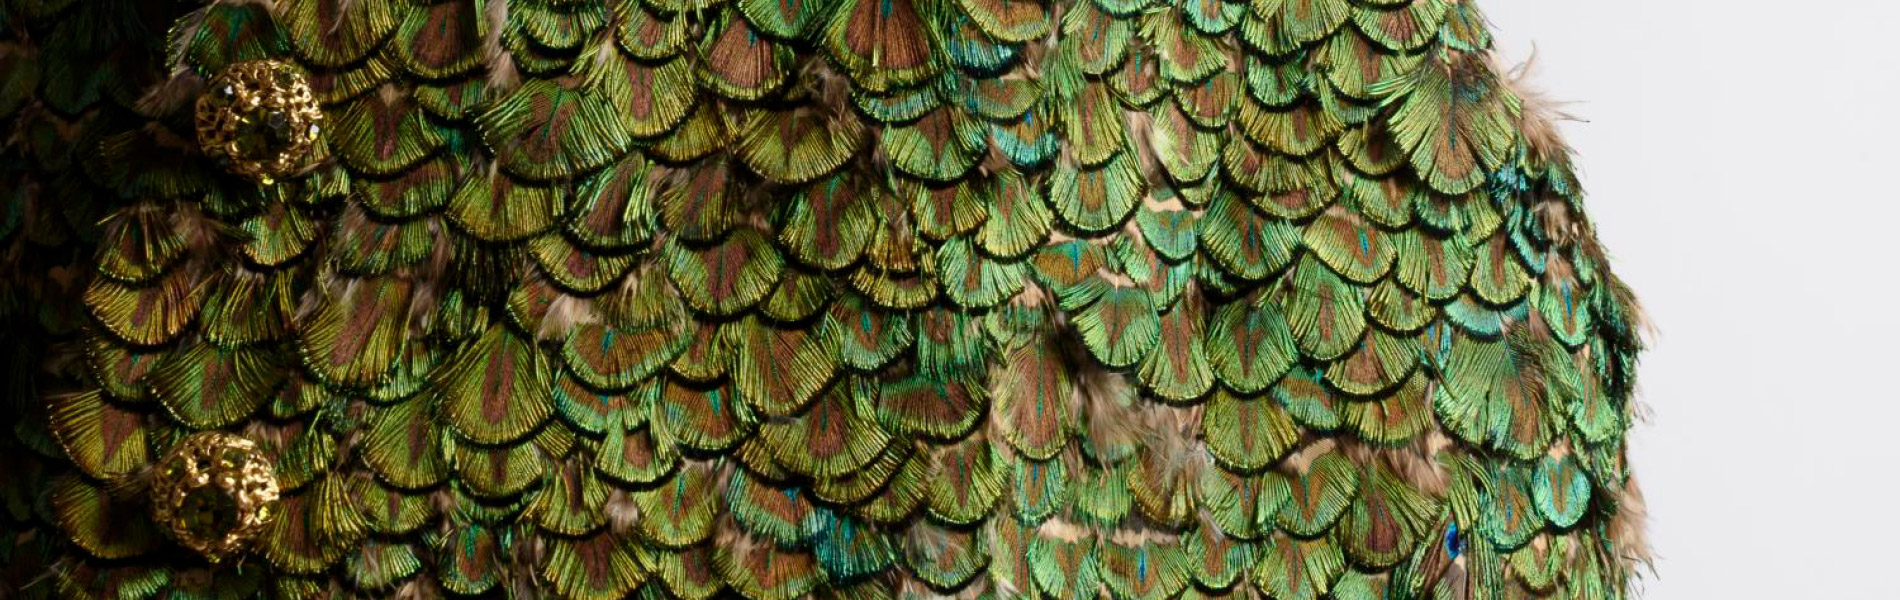 Detail of a green feathered vest with gold buttons